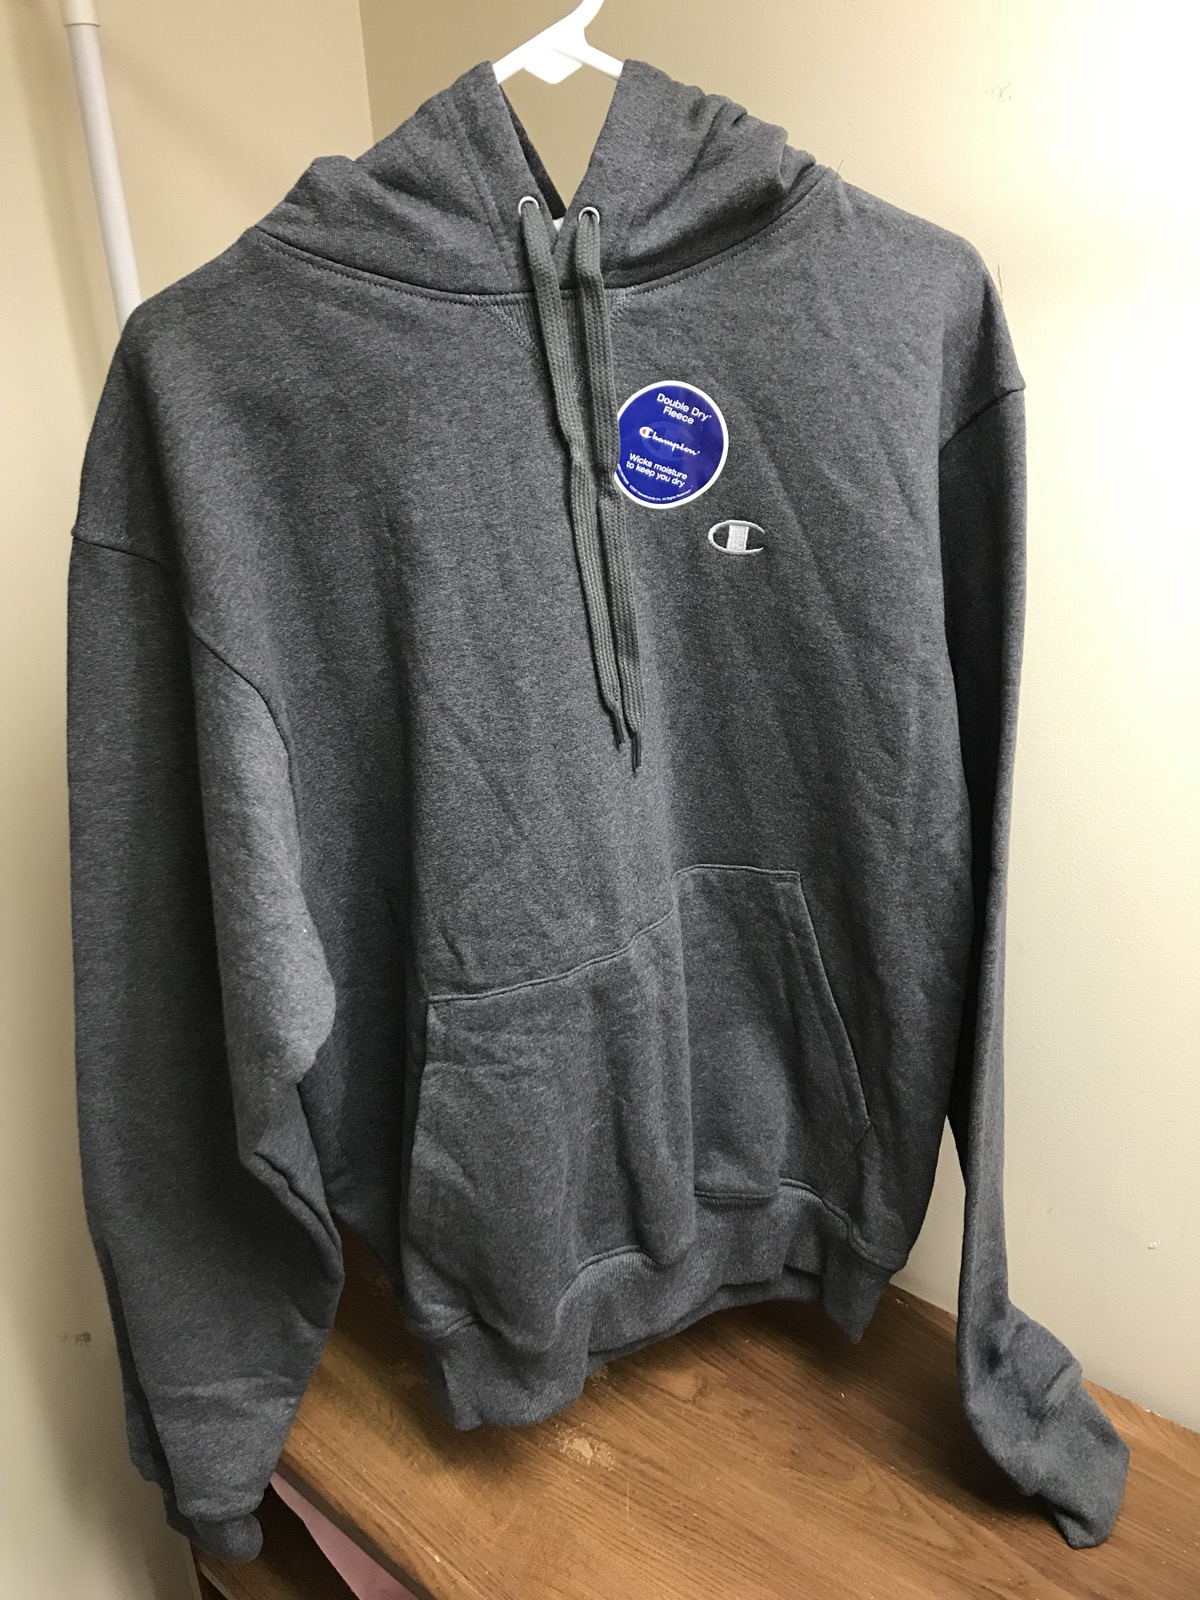 515f1fc78772 Champion Champion Men s Grey Double Dry Fleece Pullover Hoodie Size m -  Sweatshirts   Hoodies for Sale - Grailed